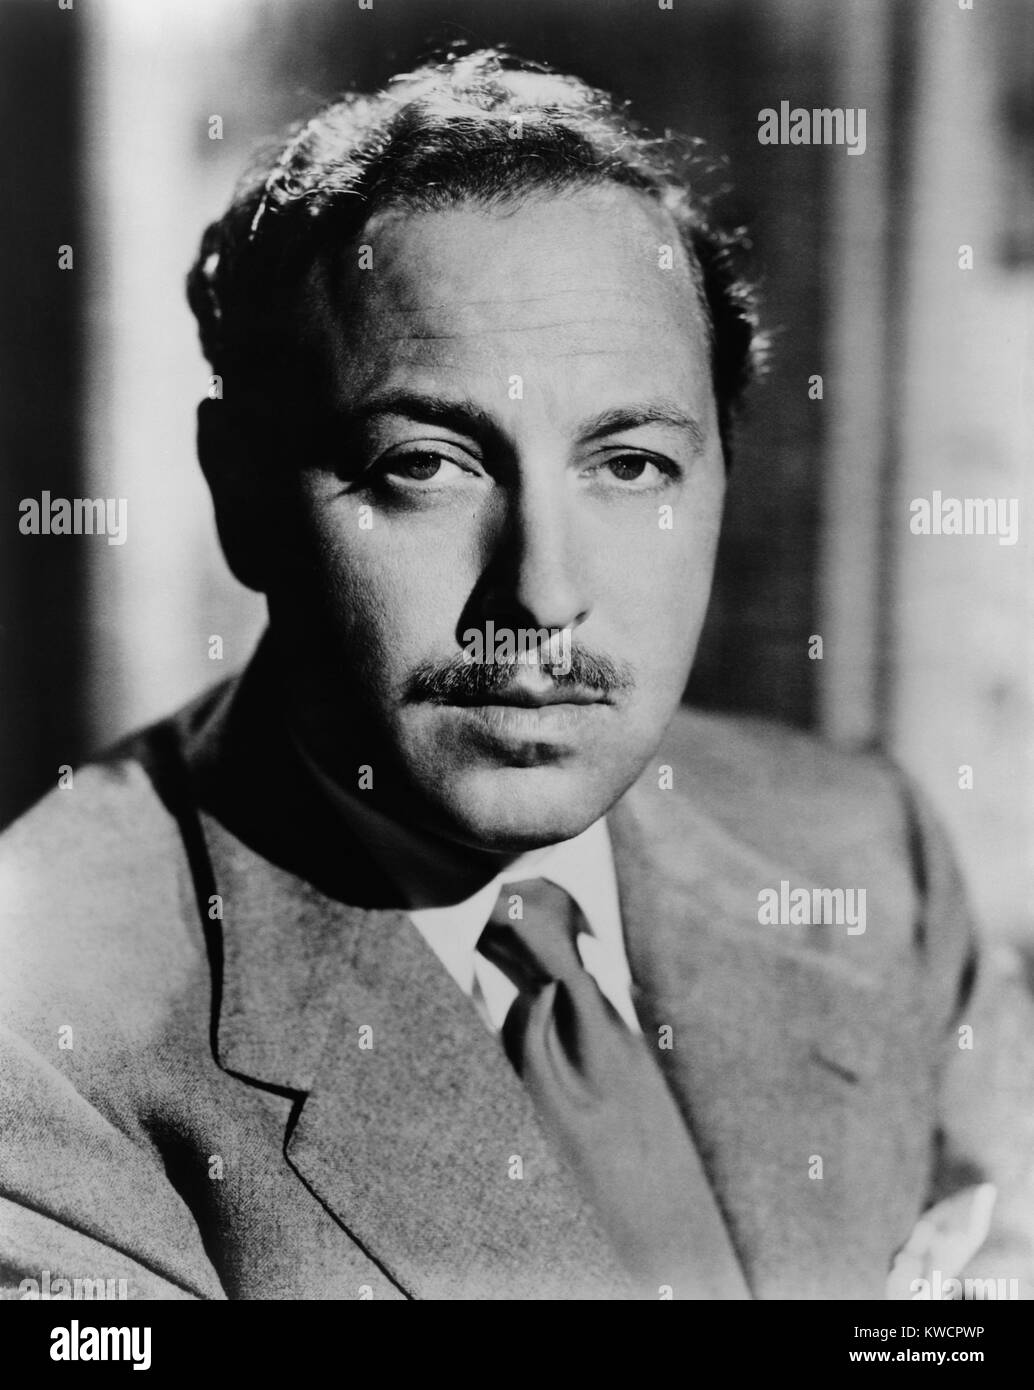 Tennessee Williams, playwright of 20th century American classics in 1952. His works include: The Glass Menagerie; Stock Photo